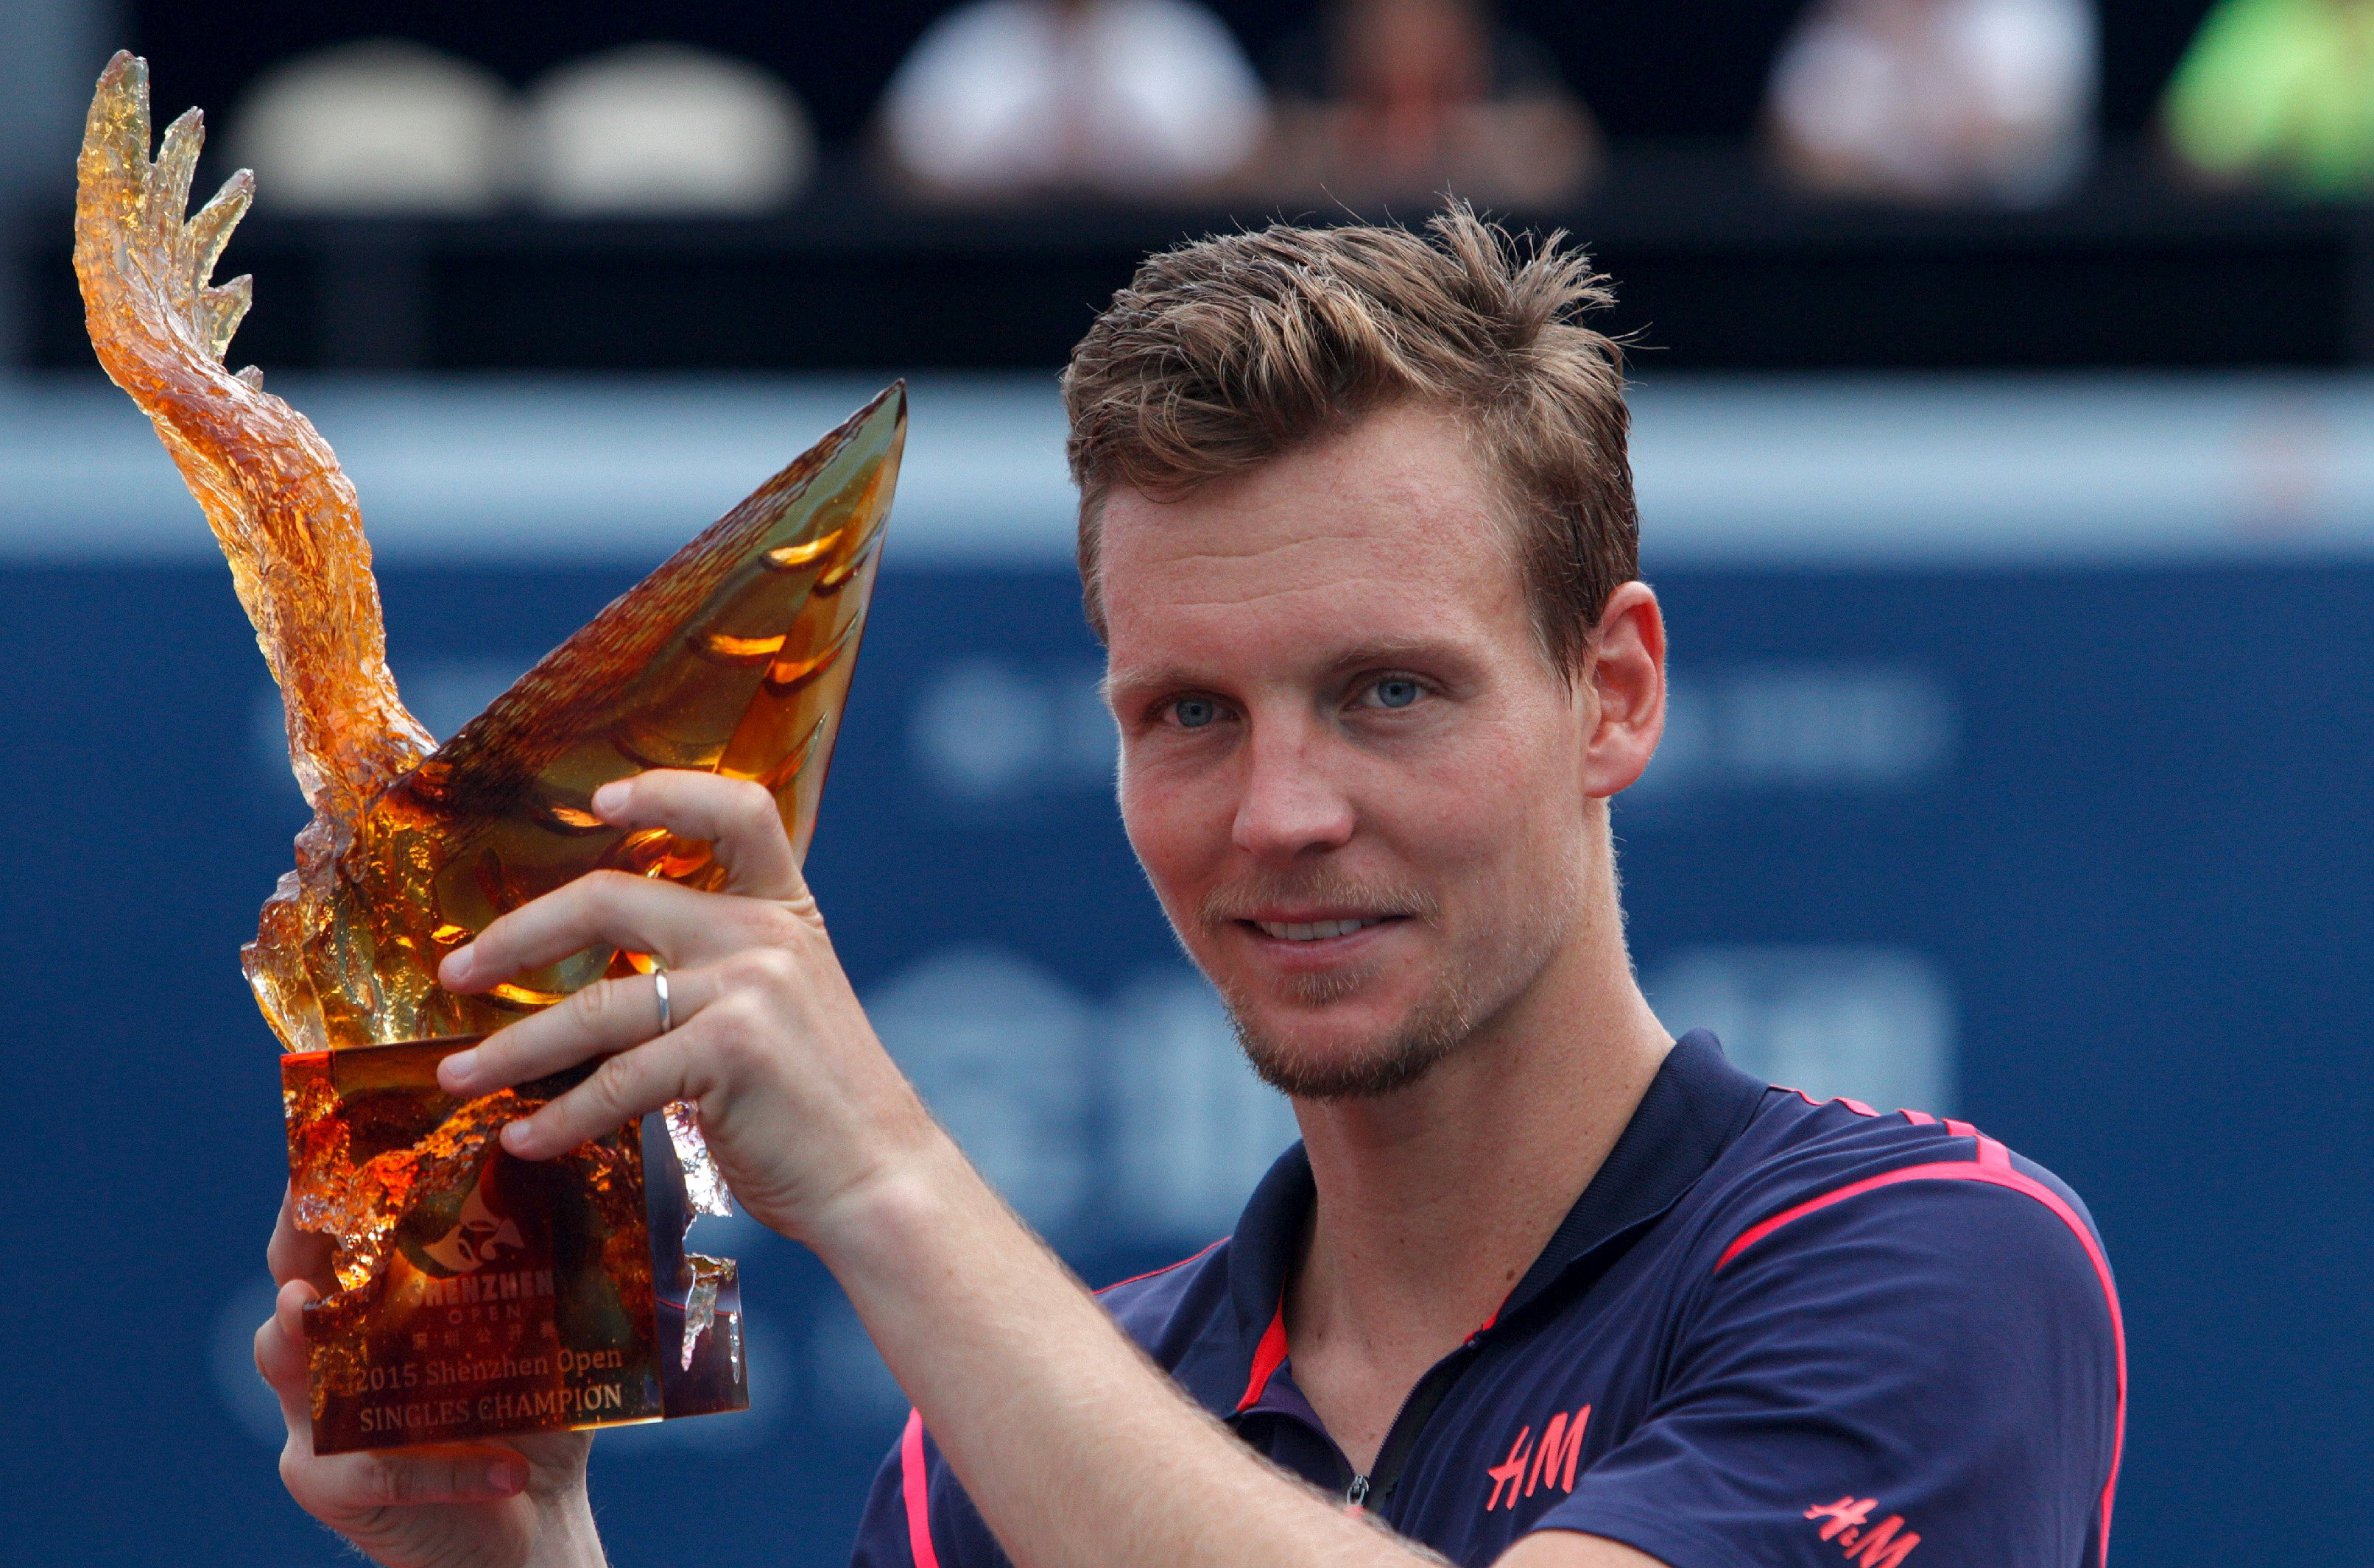 Tomas Berdych of the Czech Republic celebrates winning in final match of Shenzhen open tennis tournament against Guillermo Garcia-Lopez of Spain, Guangdong province, October 5, 2015. Tomas Berdych captured his 11th career ATP title, and his first this year, by beating Spain's Guillermo Garcia-Lopez 6-3 7-6 (7) in a rain-delayed Shenzhen Open final on Monday. REUTERS/Alex Lee